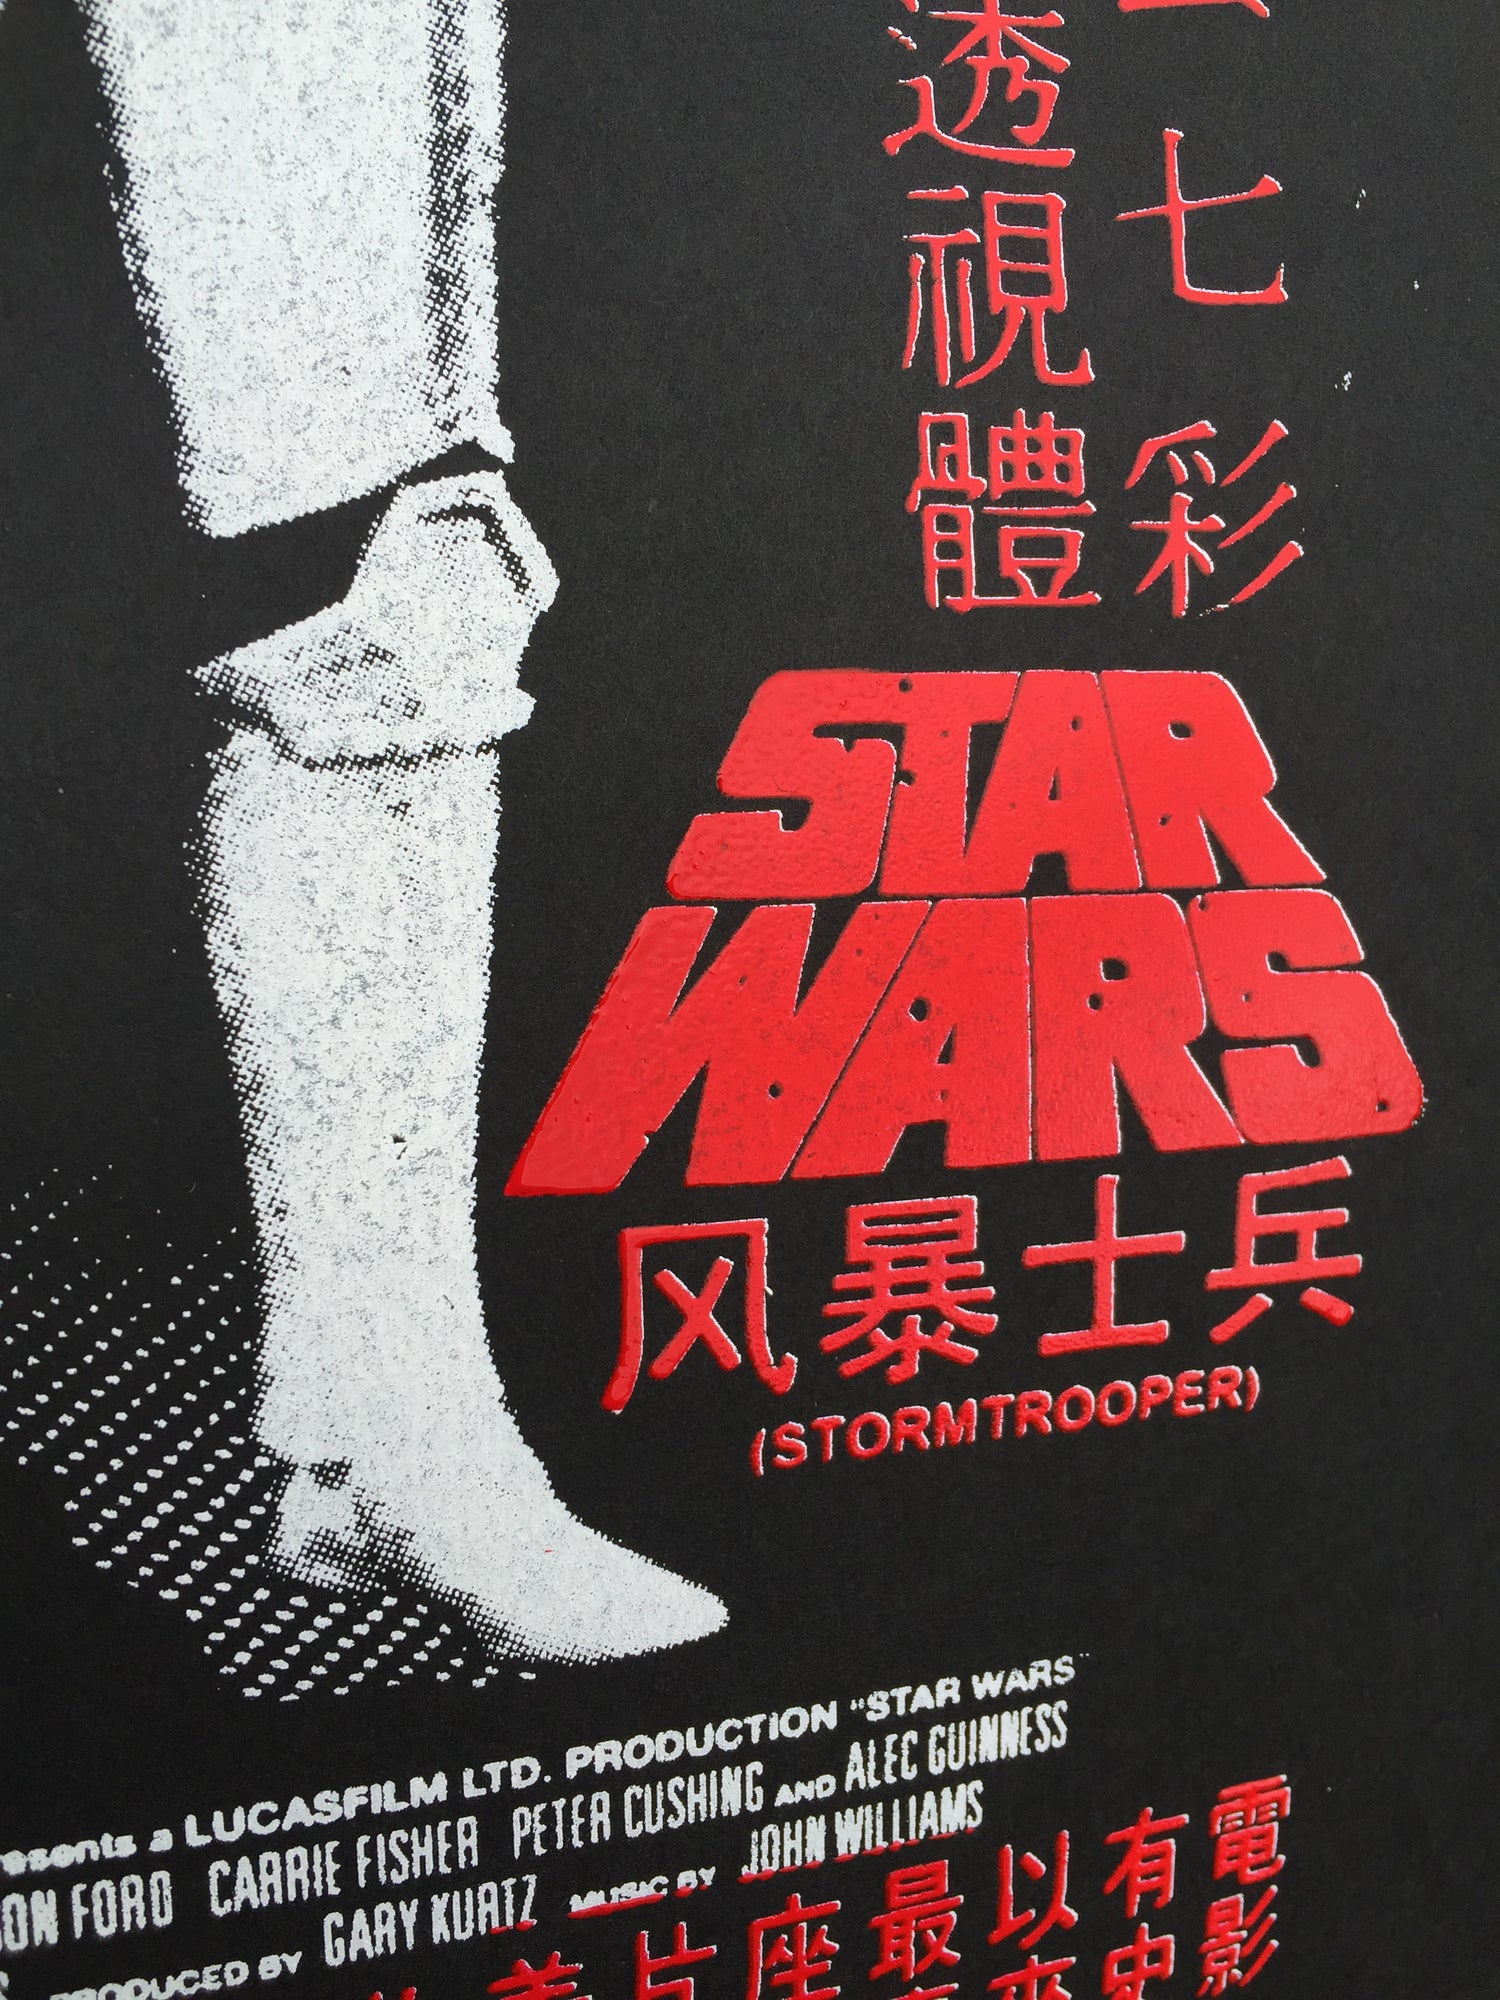 Image of 1977 Hong Kong Star Wars